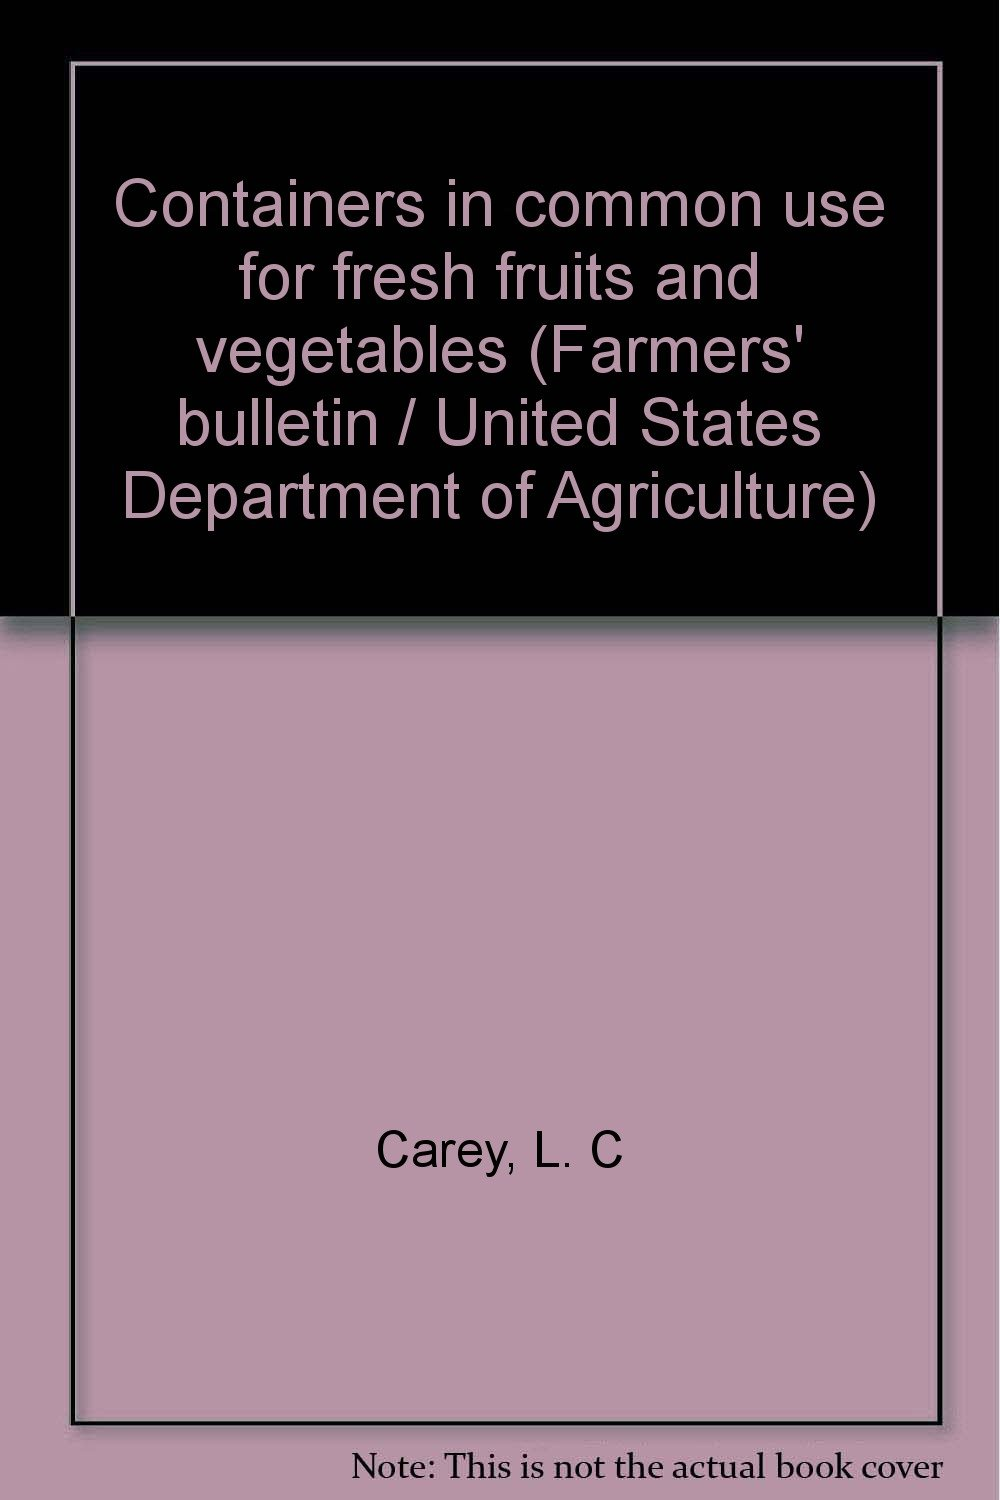 Containers in common use for fresh fruits and vegetables (Farmers' bulletin / United States Department of Agriculture)